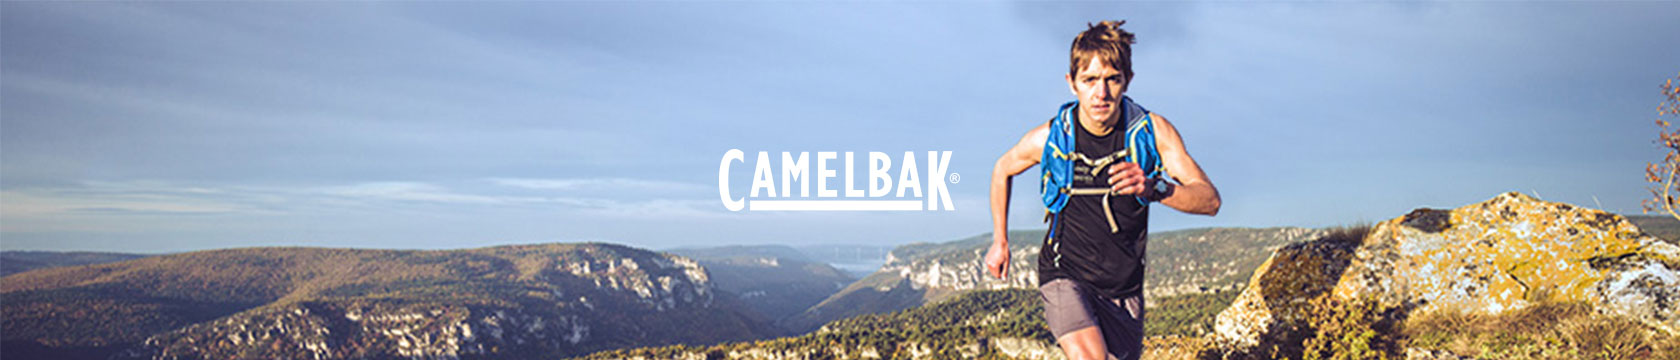 Man running with CamelBak gear.